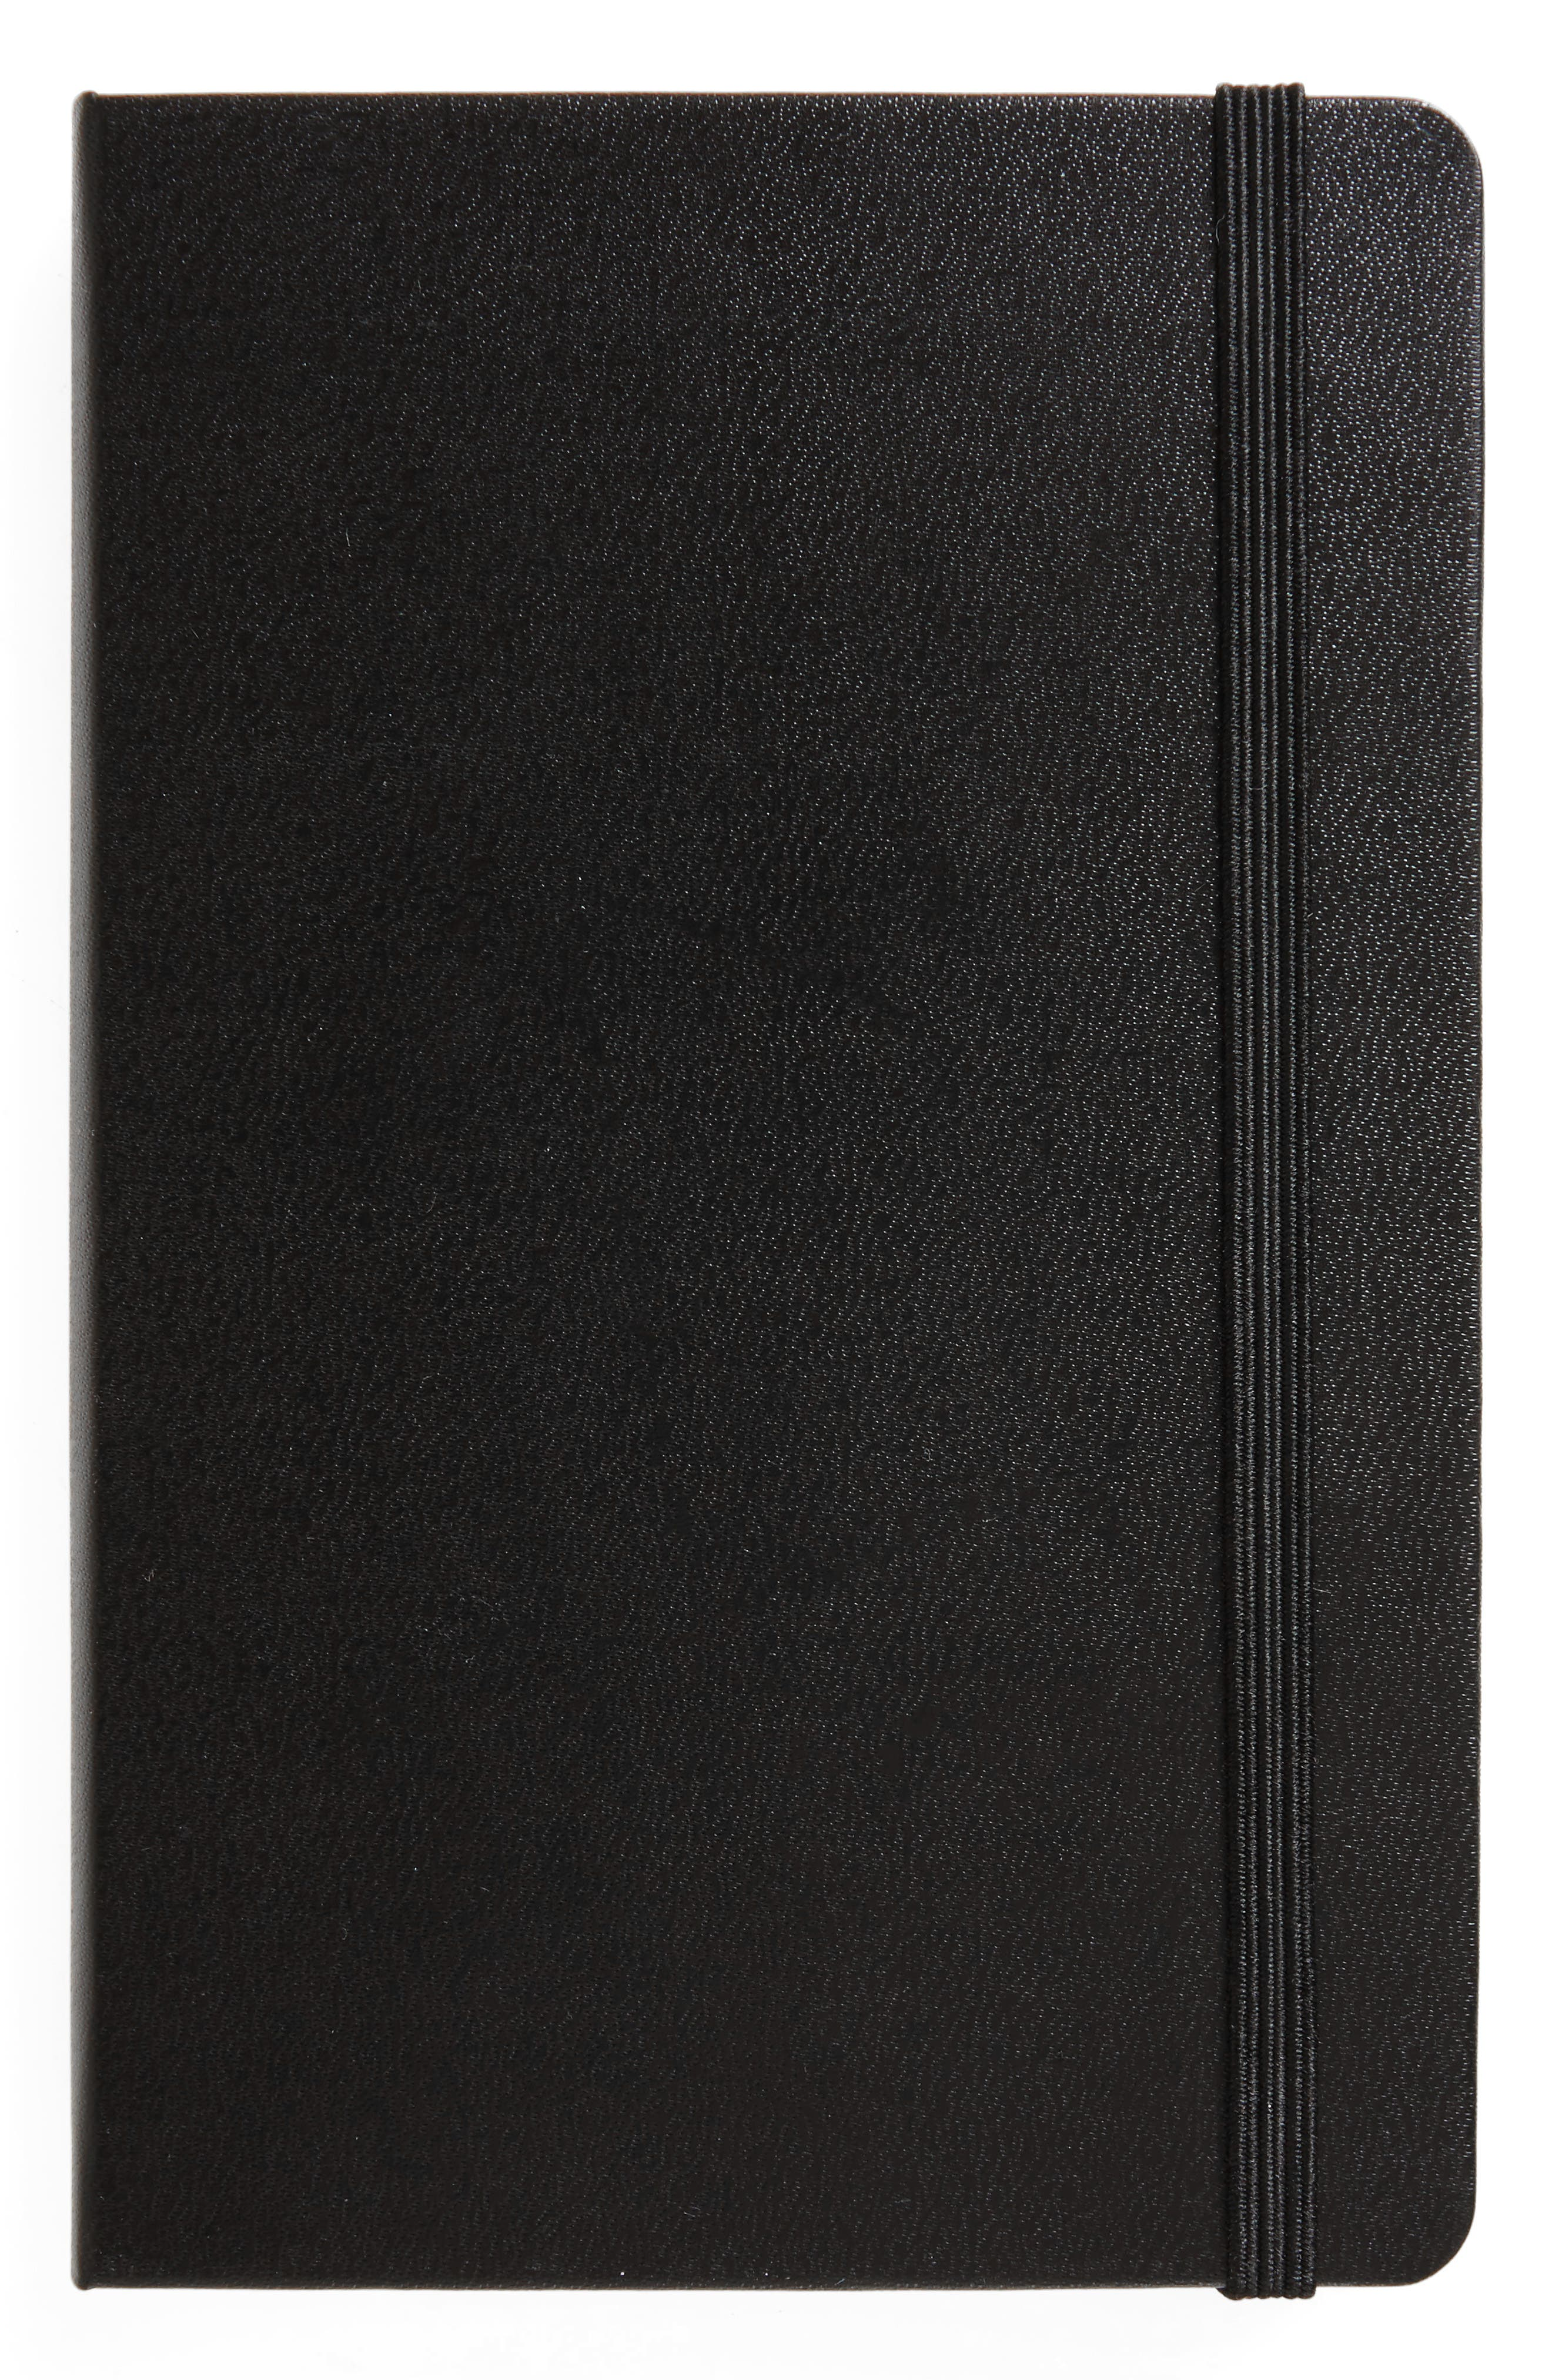 Classic Ruled Pocket Hardcover Notebook,                         Main,                         color, Black